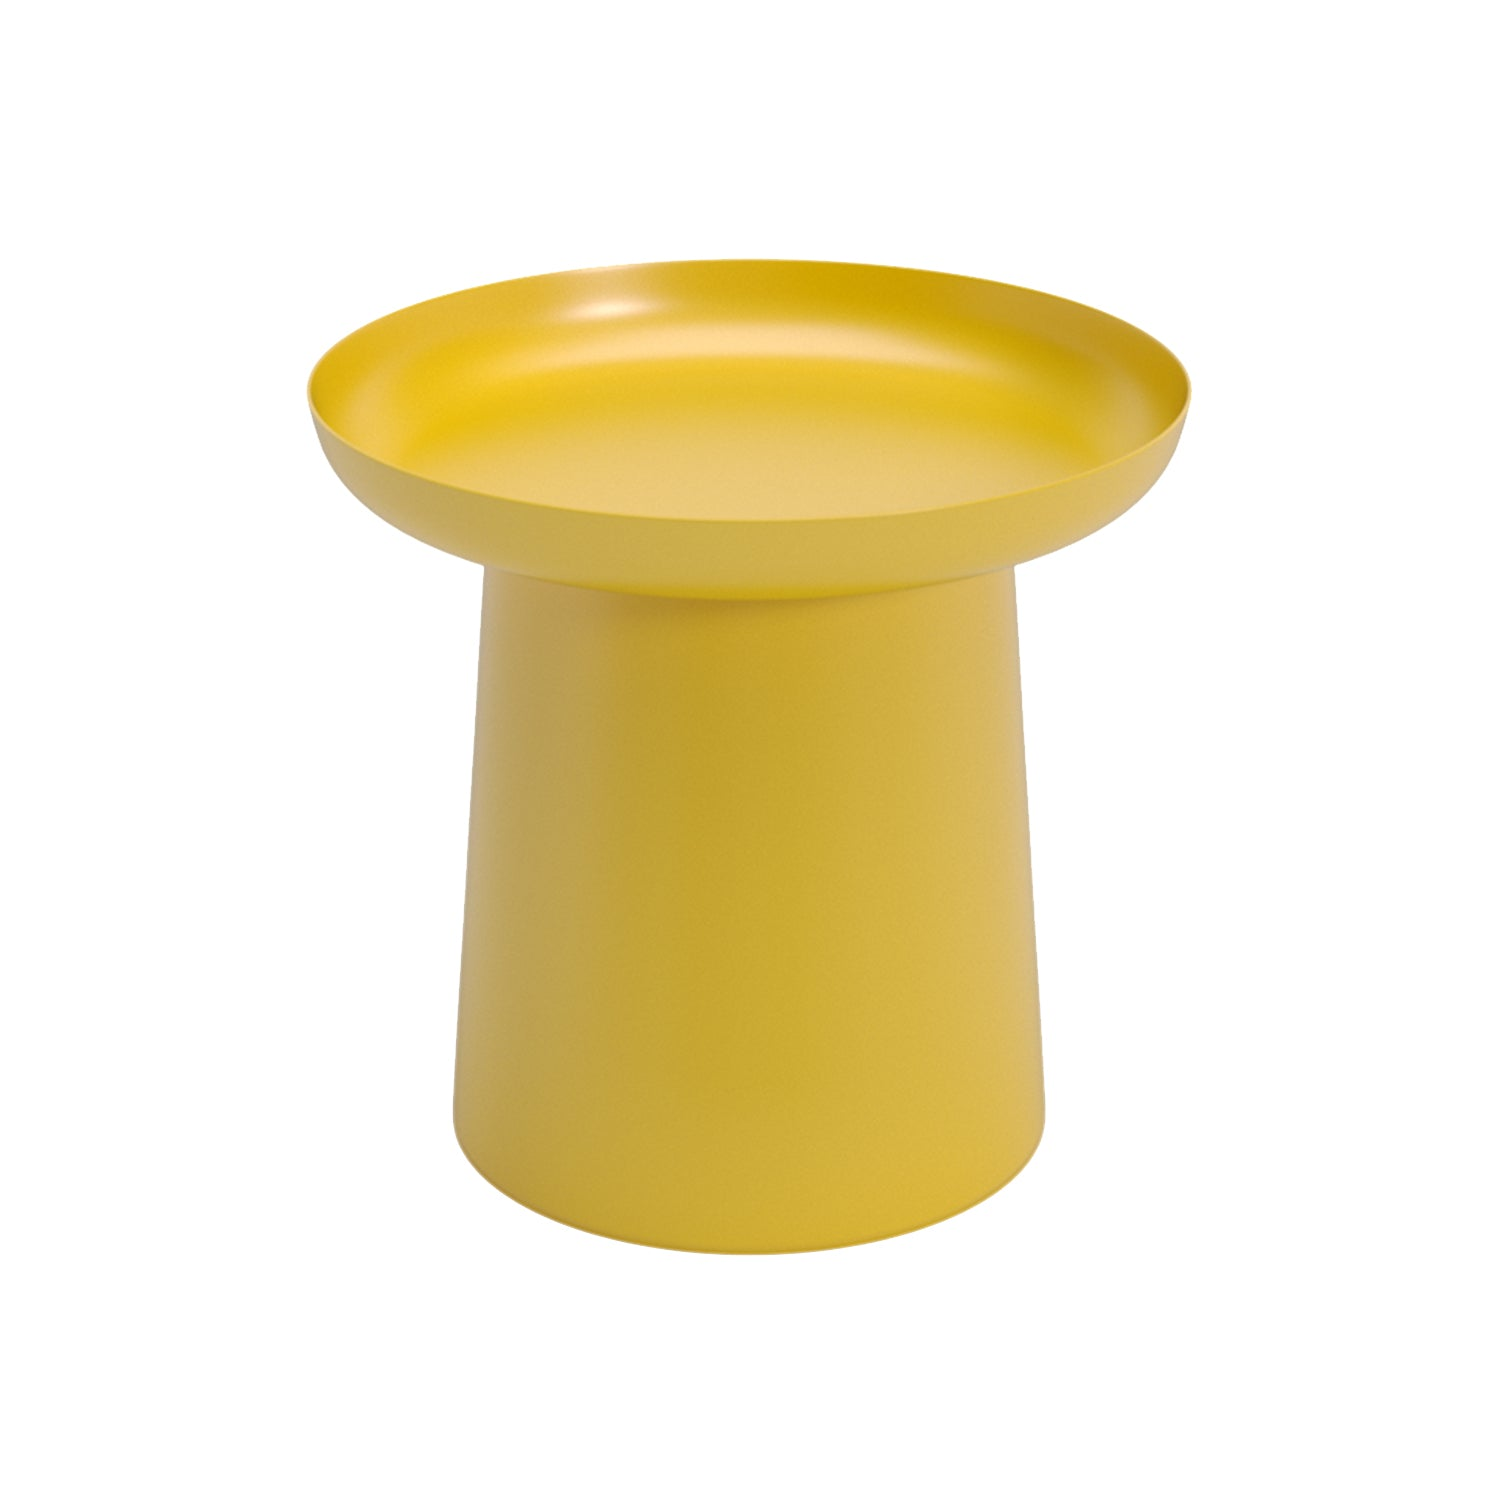 Musette Coffee + Side Table: Side Table + Golden Yellow